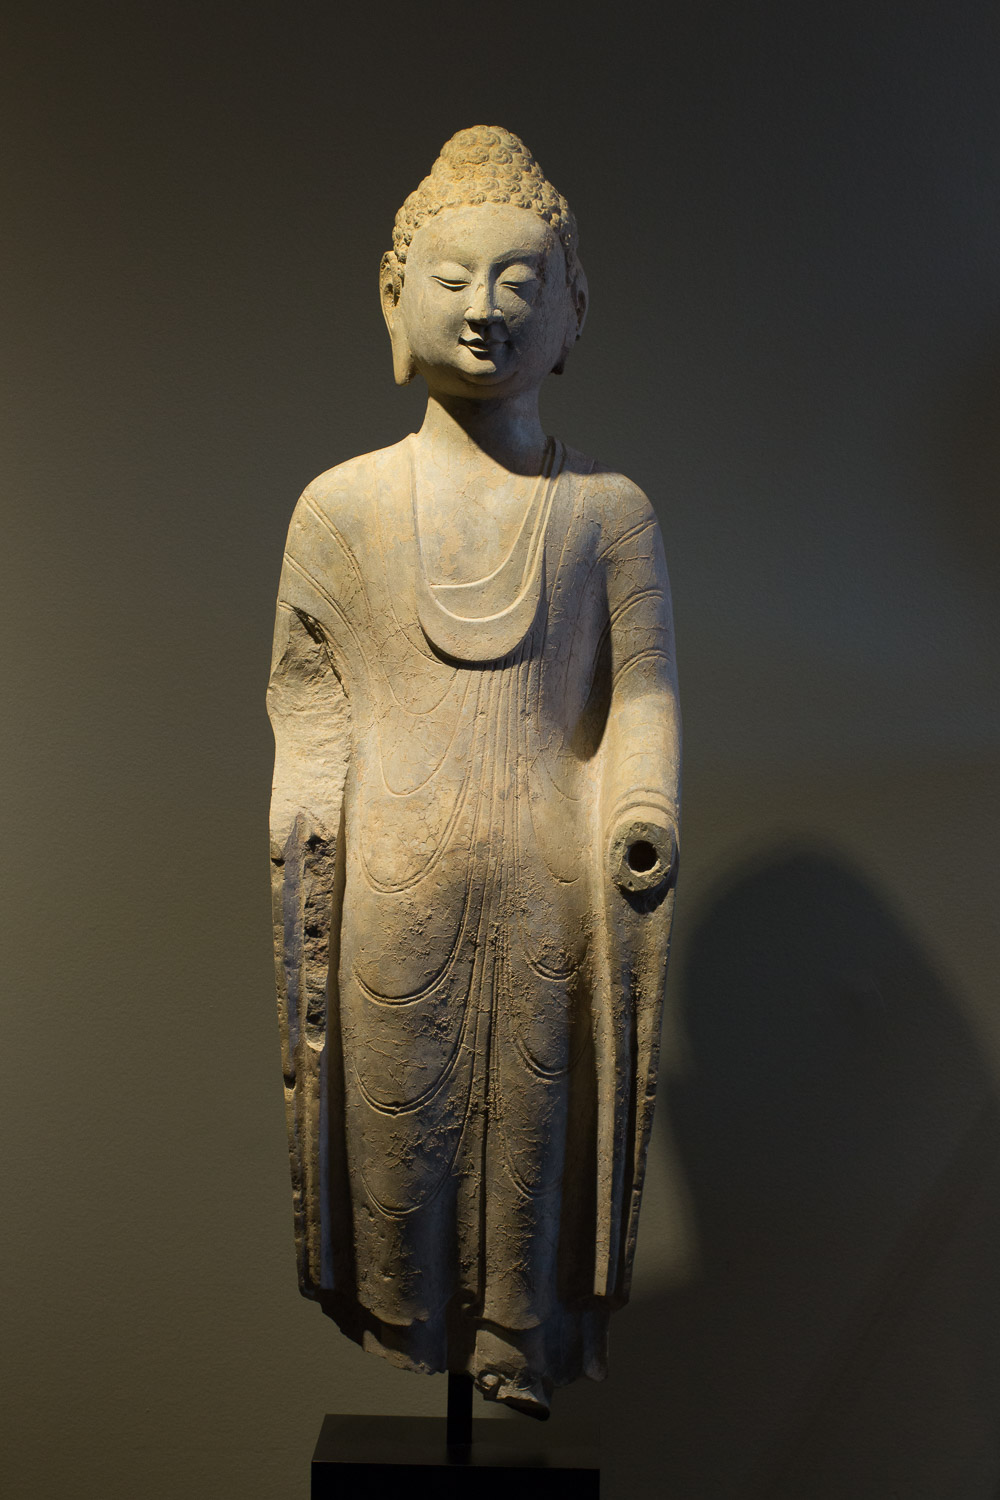 STATUE OF BUDDHA - China, Northern Qi Dynasty, 550 – 577 A.D.    Courtesy of Tom Swope Gallery